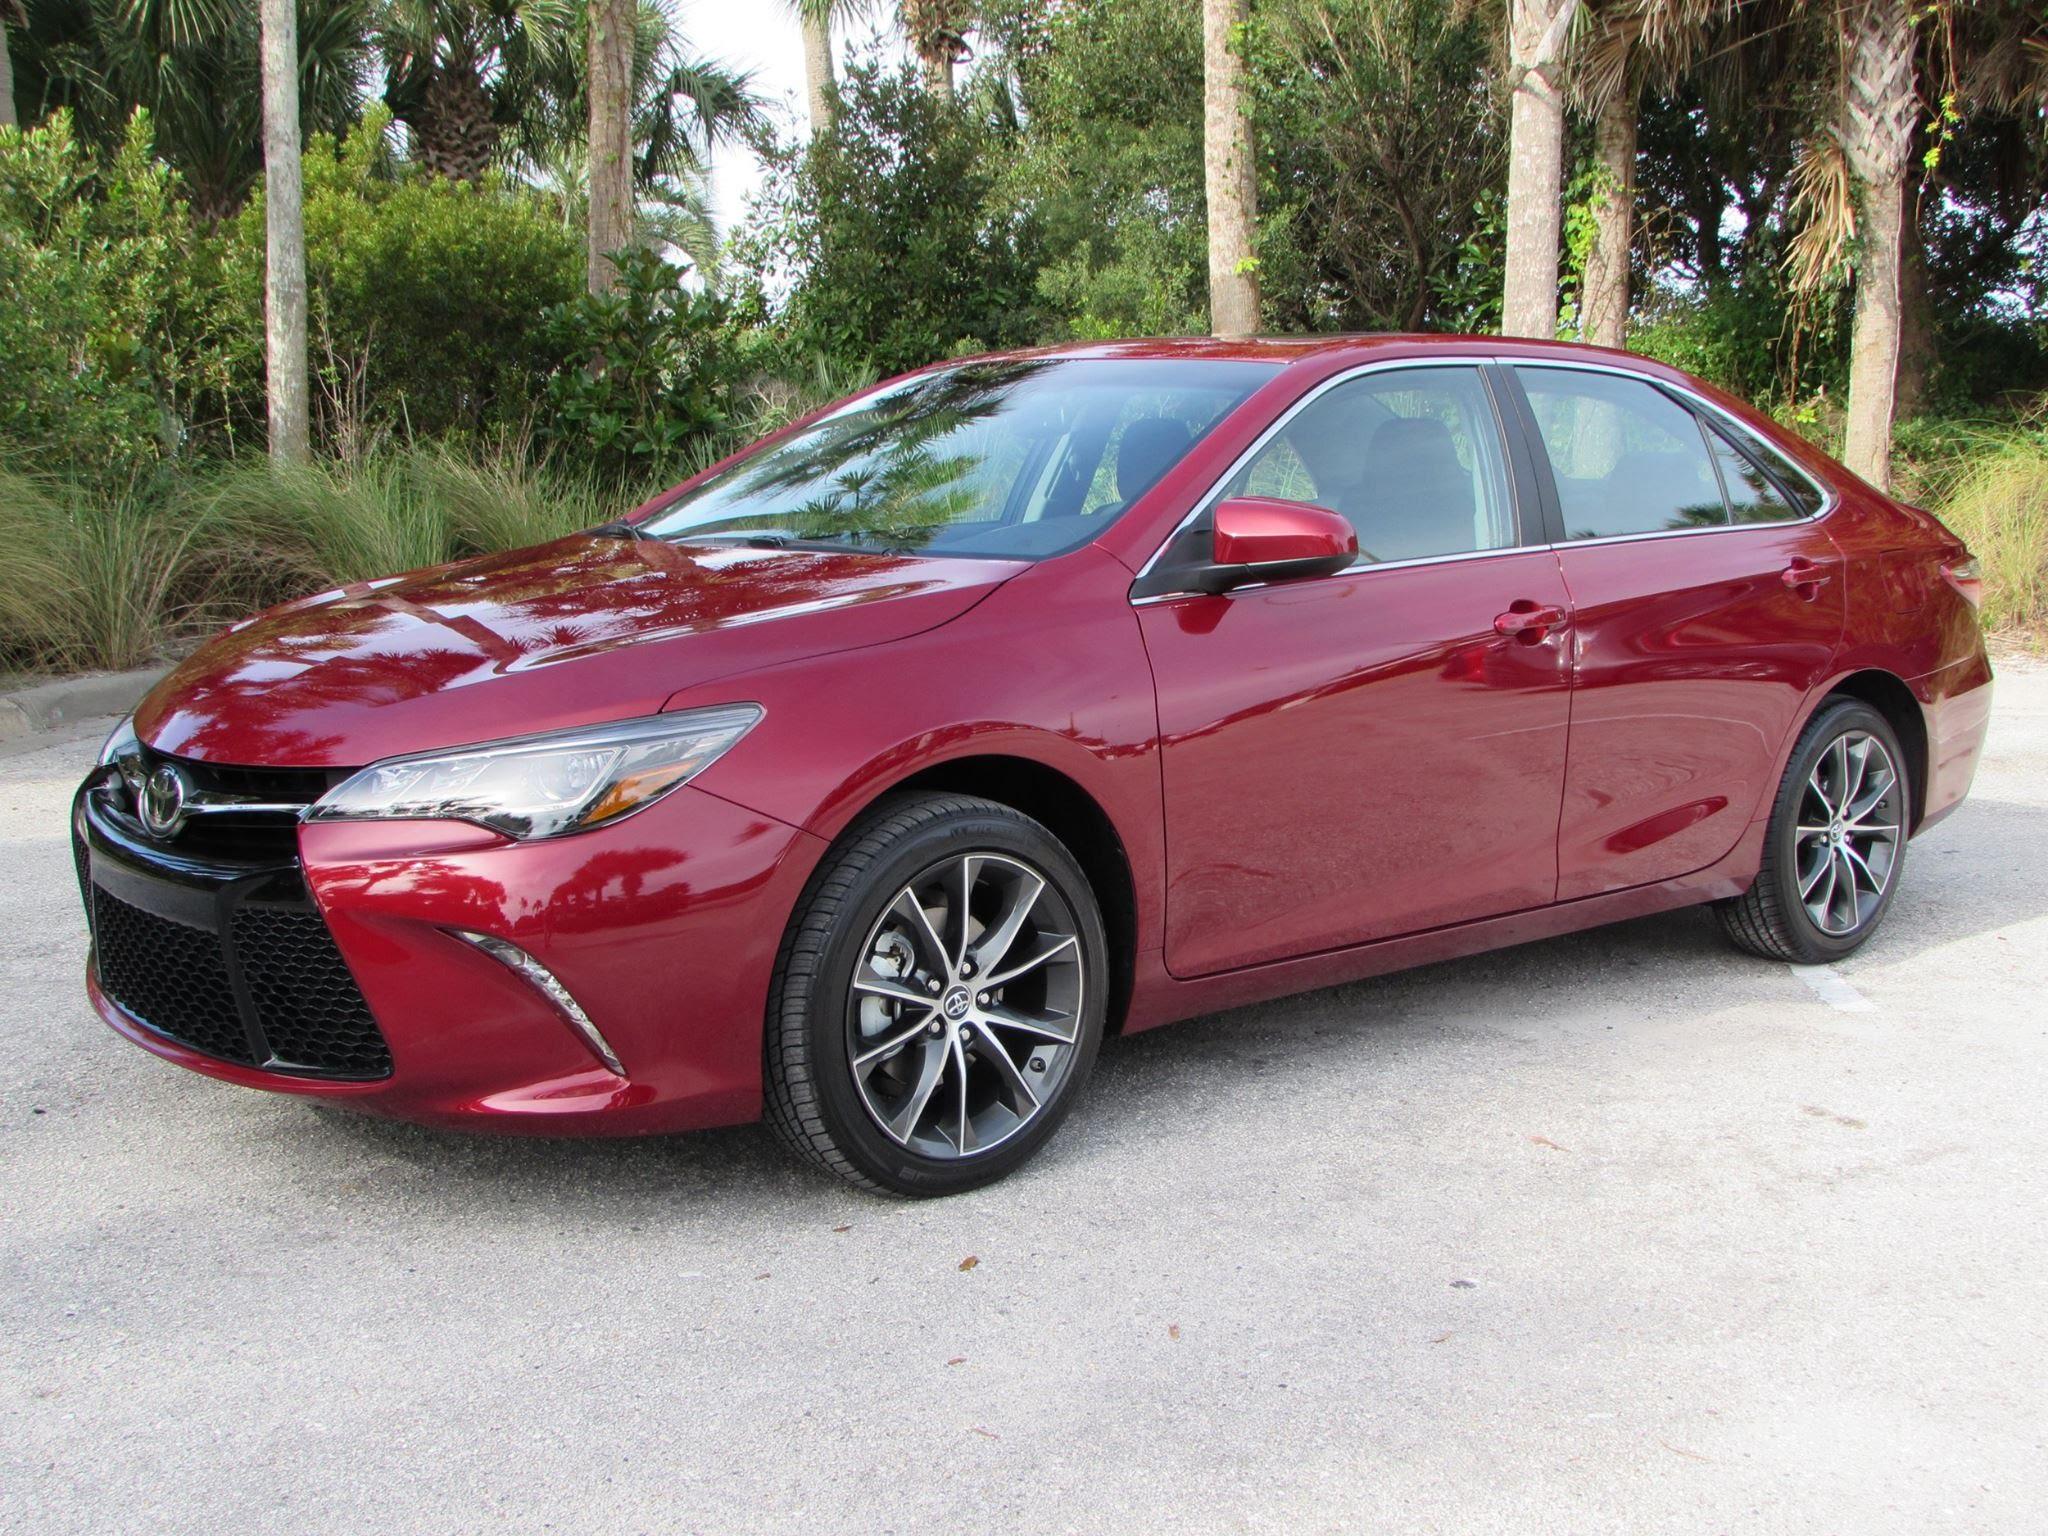 2016 Toyota Camry XSE Car Review Video